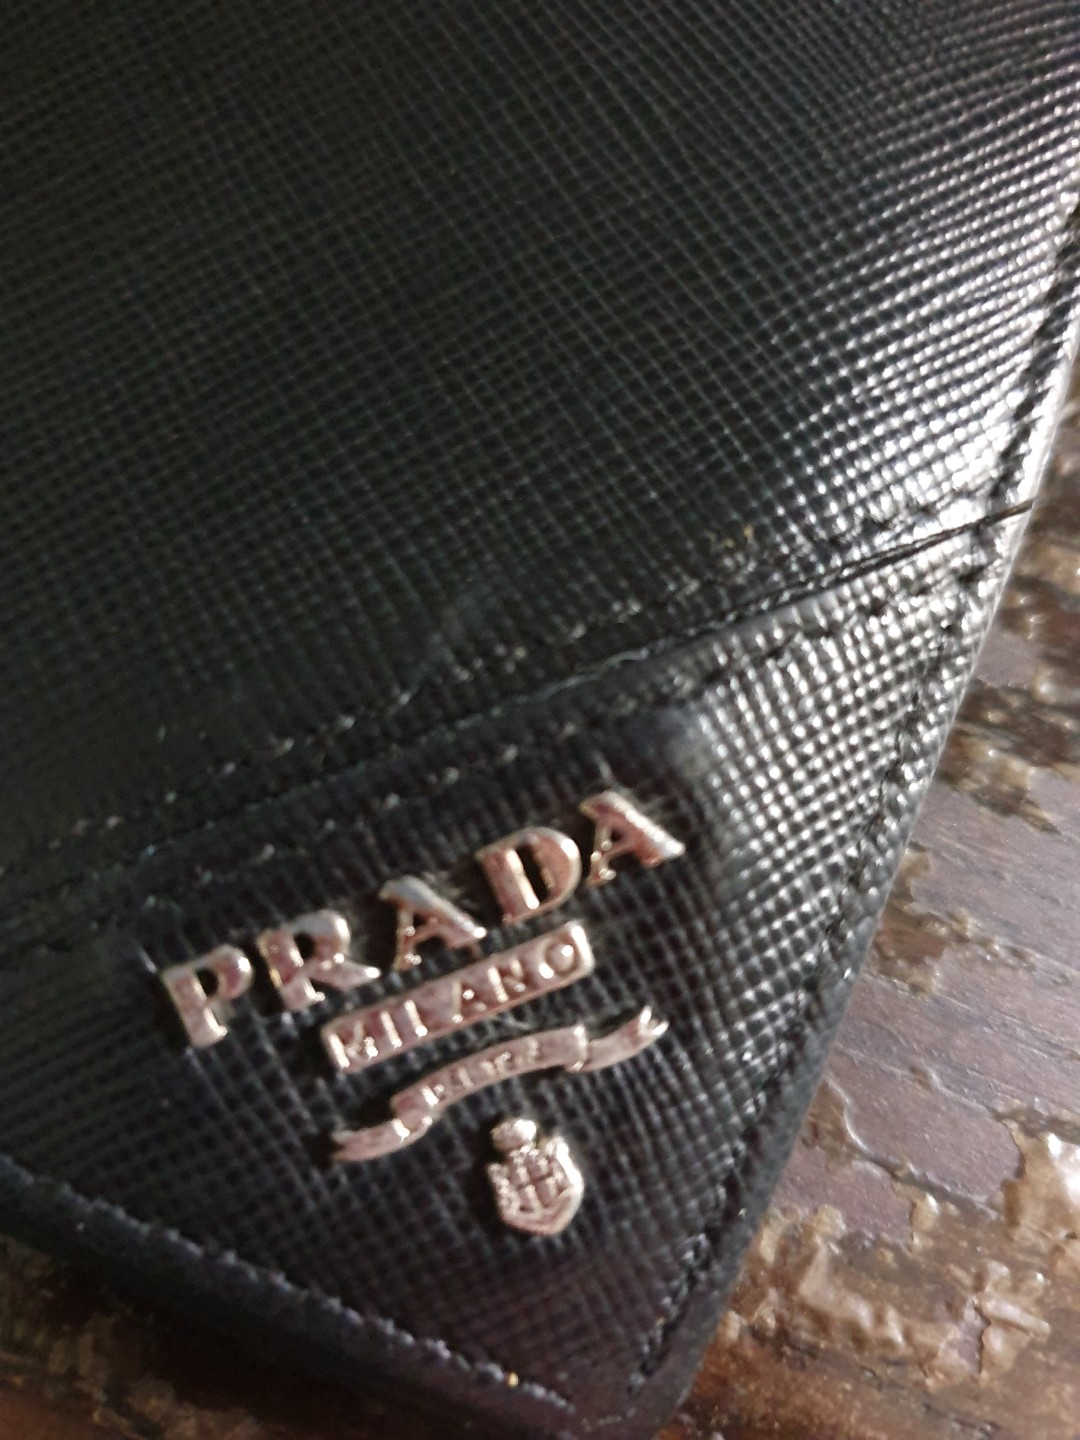 3e05c9954f22 Prada Saffiano Classic Men's Wallet, Luxury, Bags & Wallets, Wallets on  Carousell